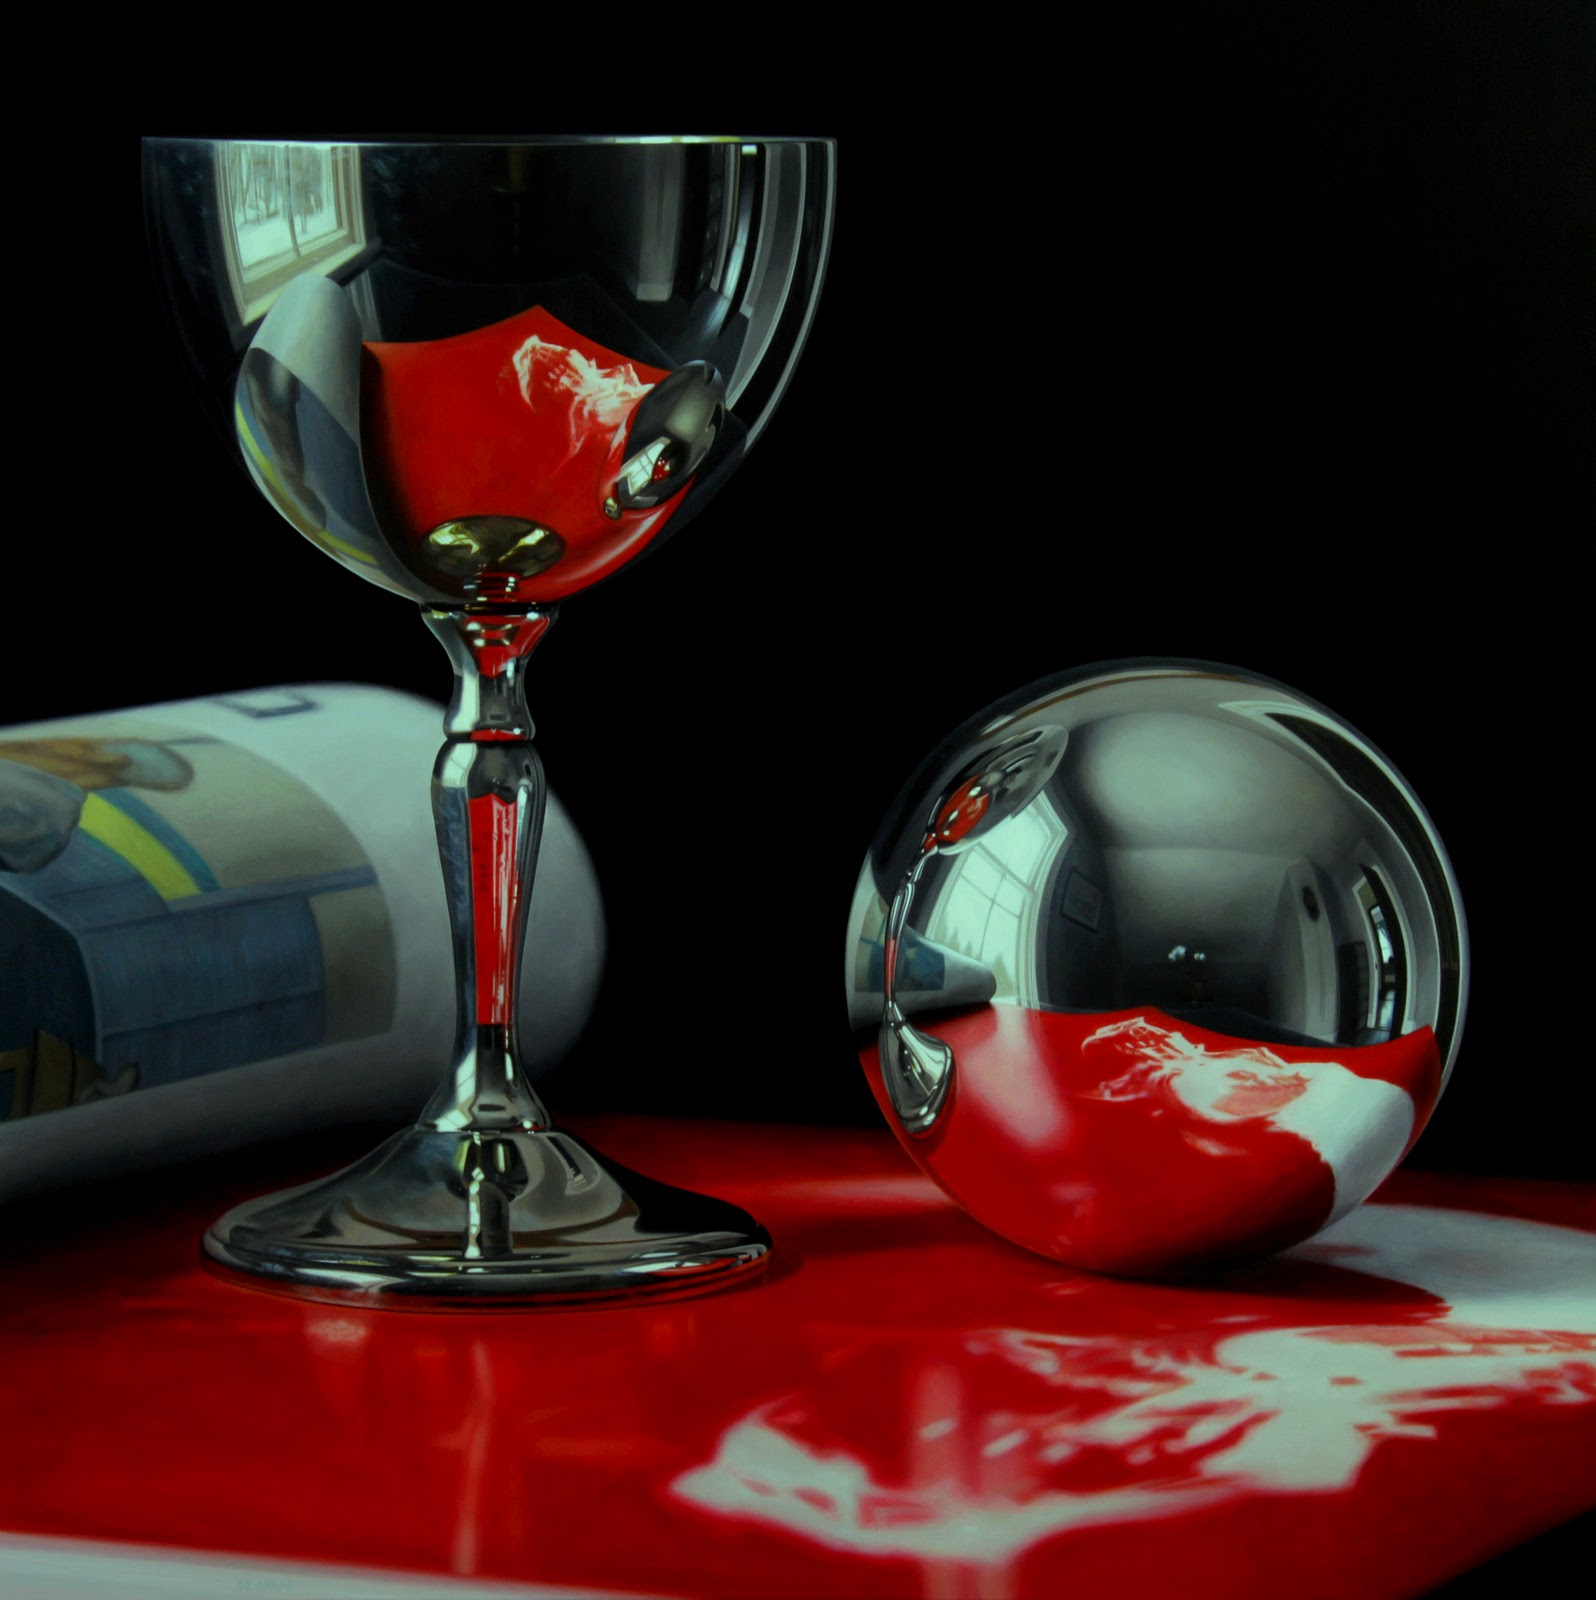 10-Theory-of-Probability-Photo-Realistic-Reflection-Paintings-www-designstack-co